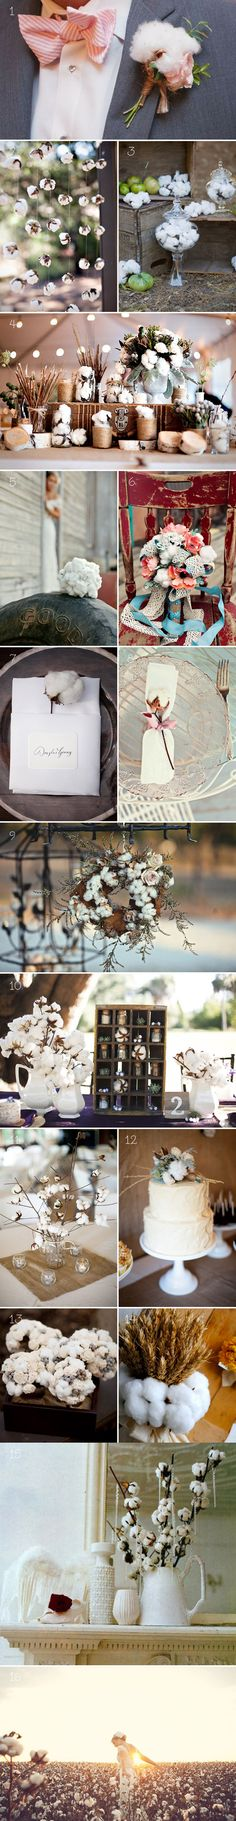 I've never really thought about using cotton in a wedding, but it seems really charming.